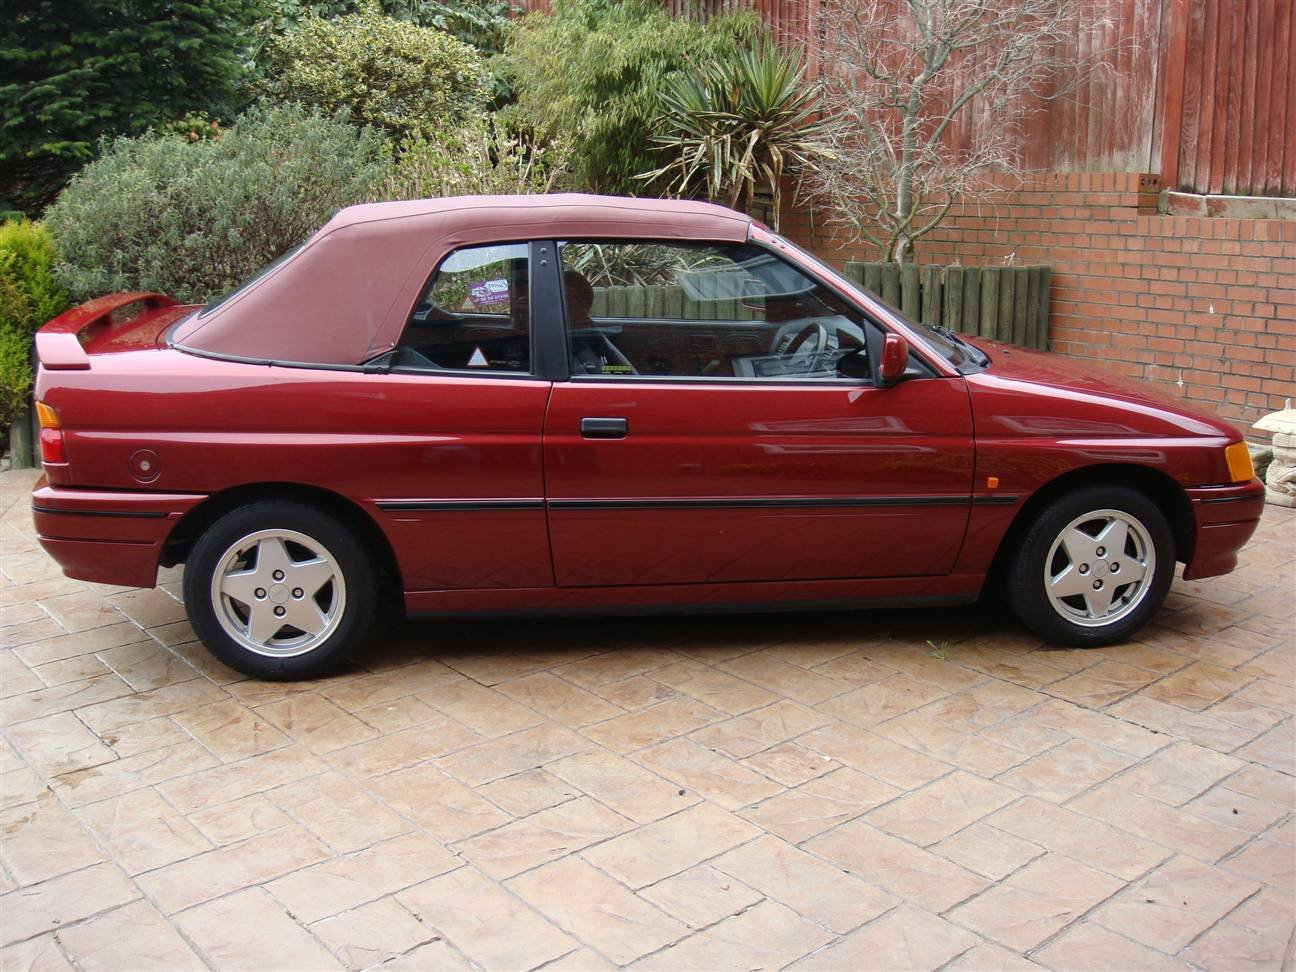 1992 Escort Cabriolet (Bardolino Red ) SOLD (picture 1 of 6)